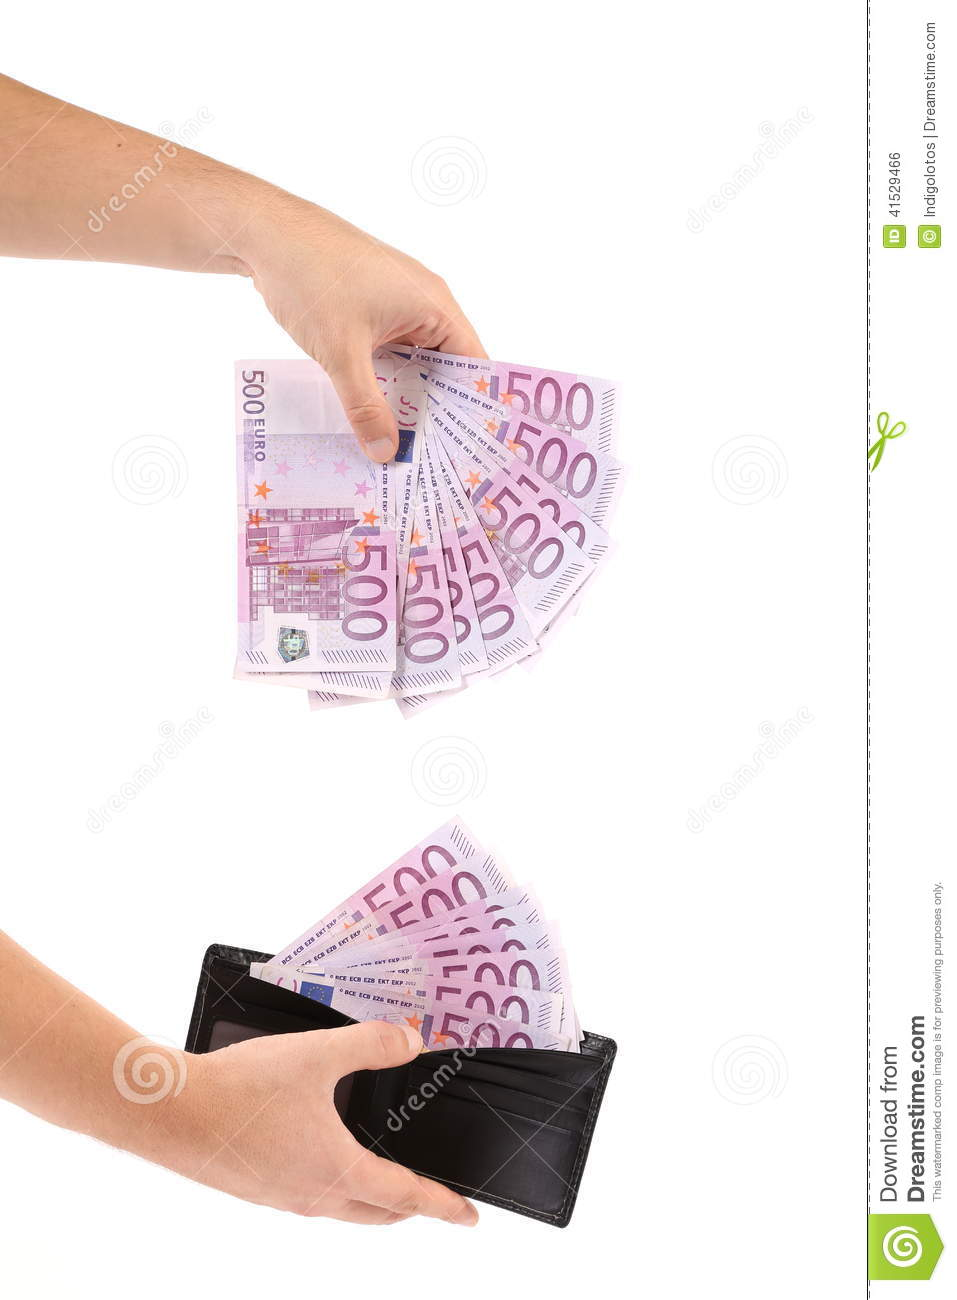 Hand with leather wallet and euro banknotes.